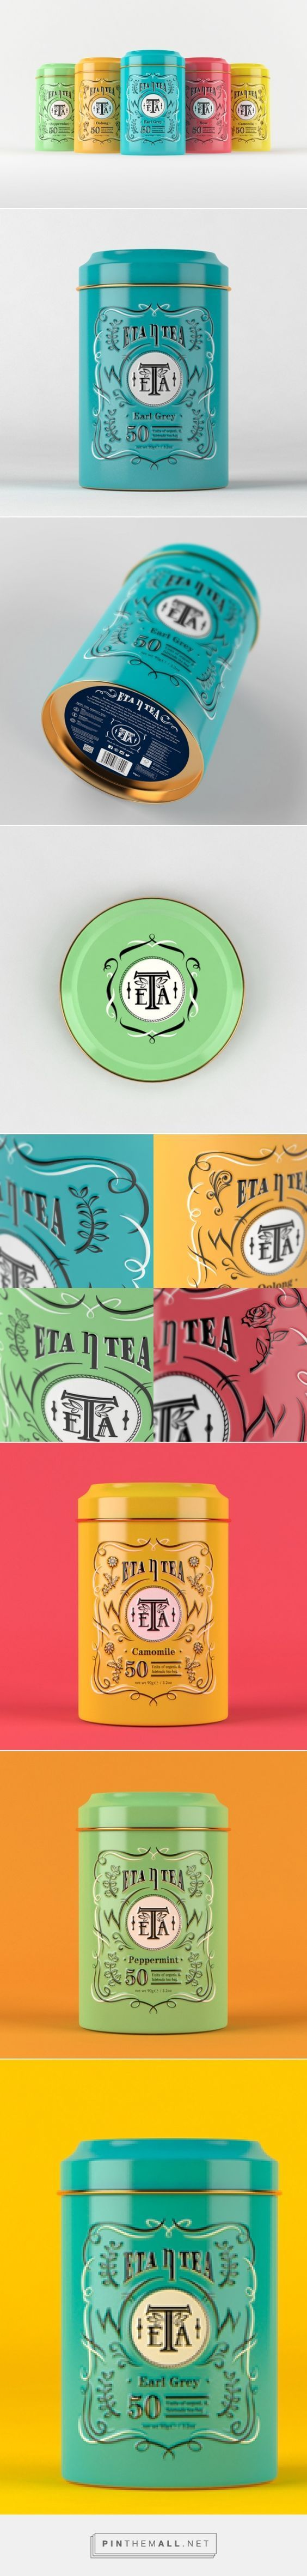 Gorgeous concepts for branding, packaging and design. Do you need custom product labels for your business? Come visit us at http://ziptape.com!